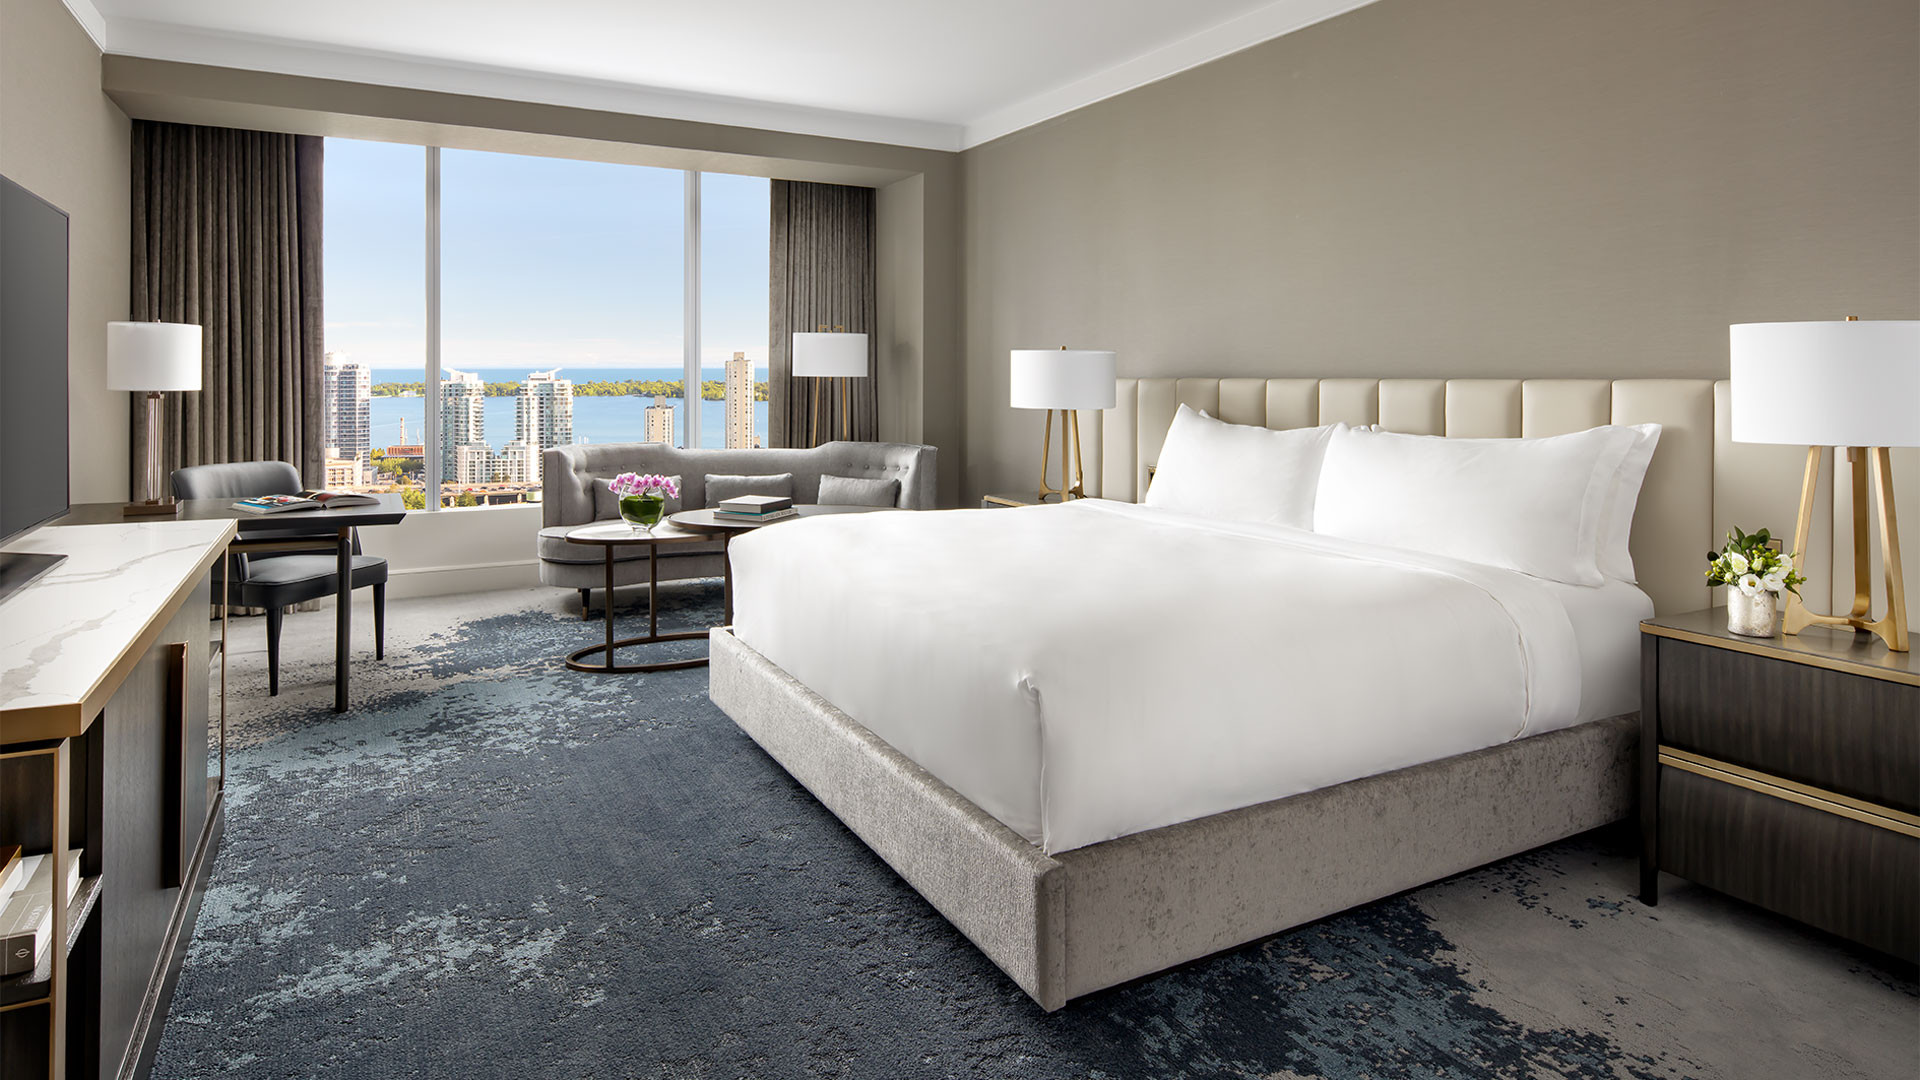 The Ritz-Carlton Hotel Toronto | Bedroom suite overlooking the lake